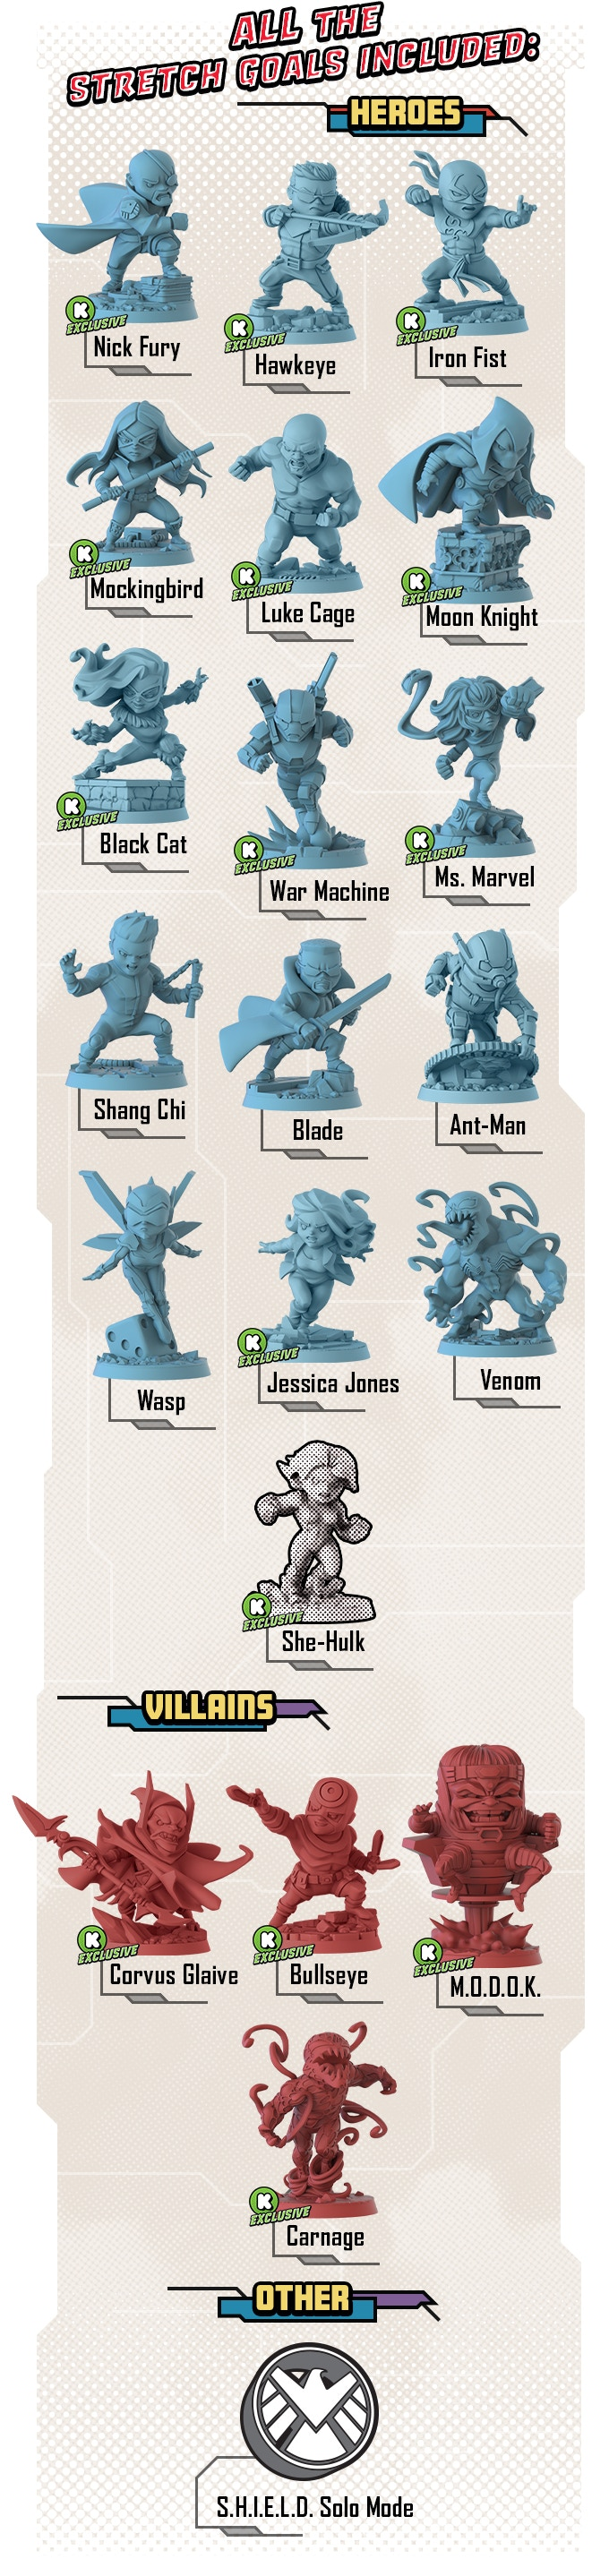 Marvel United Stretch Goals - CMON